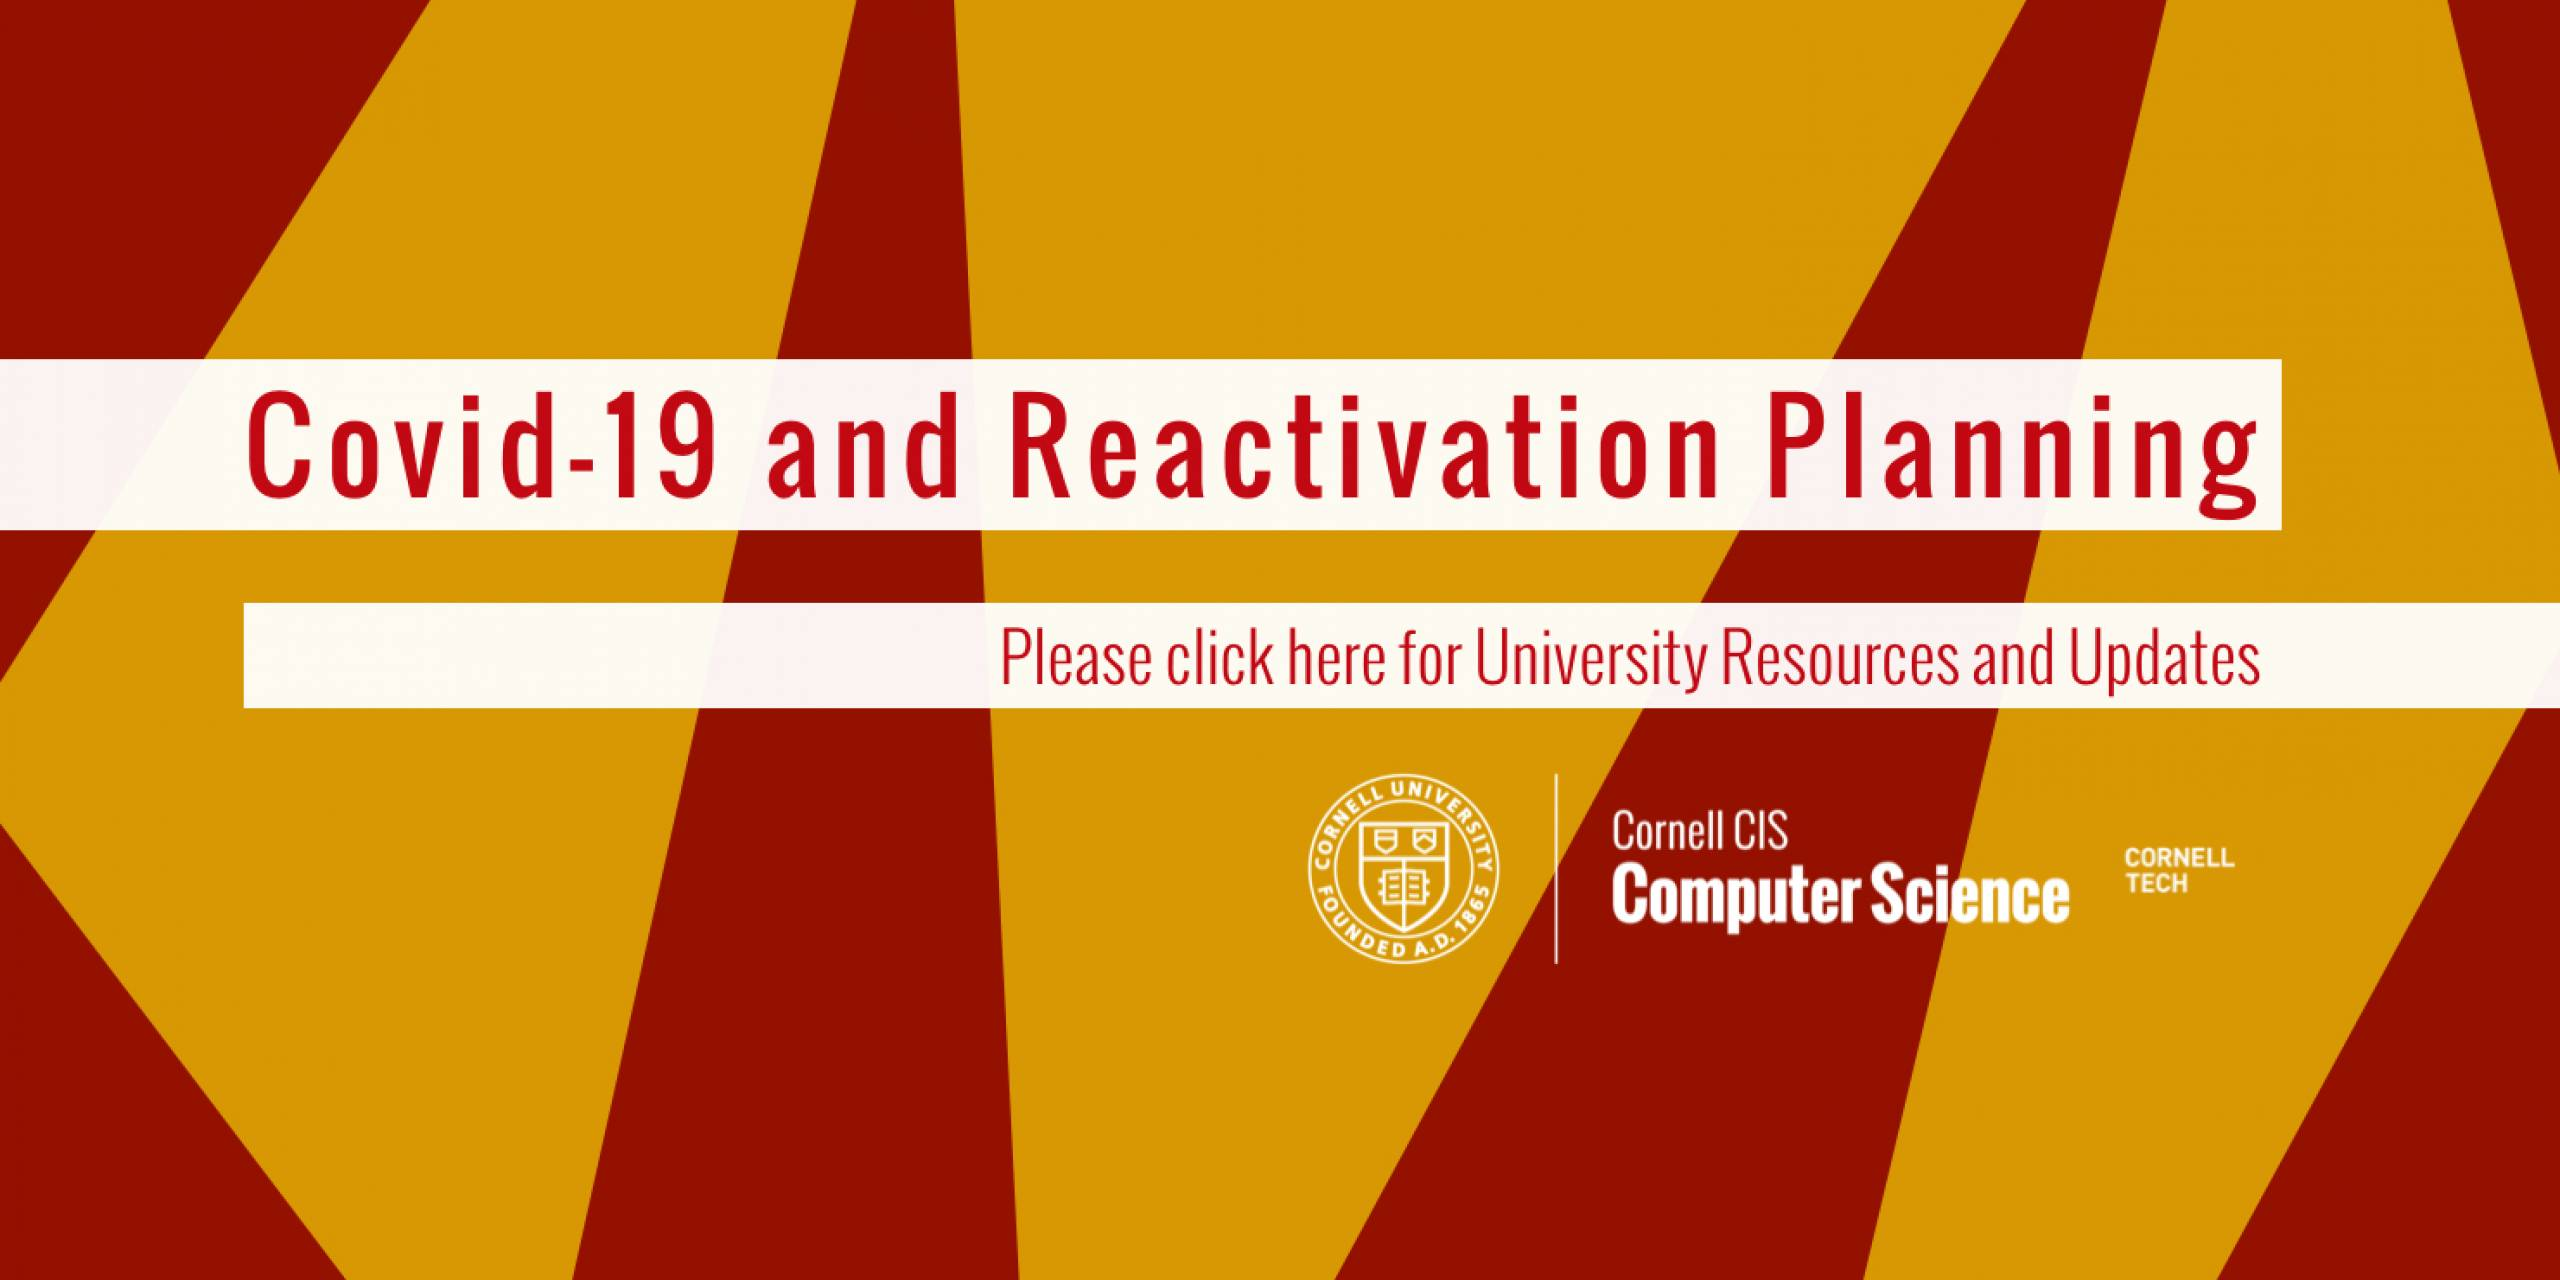 Covid-19 and Reactivation Planning